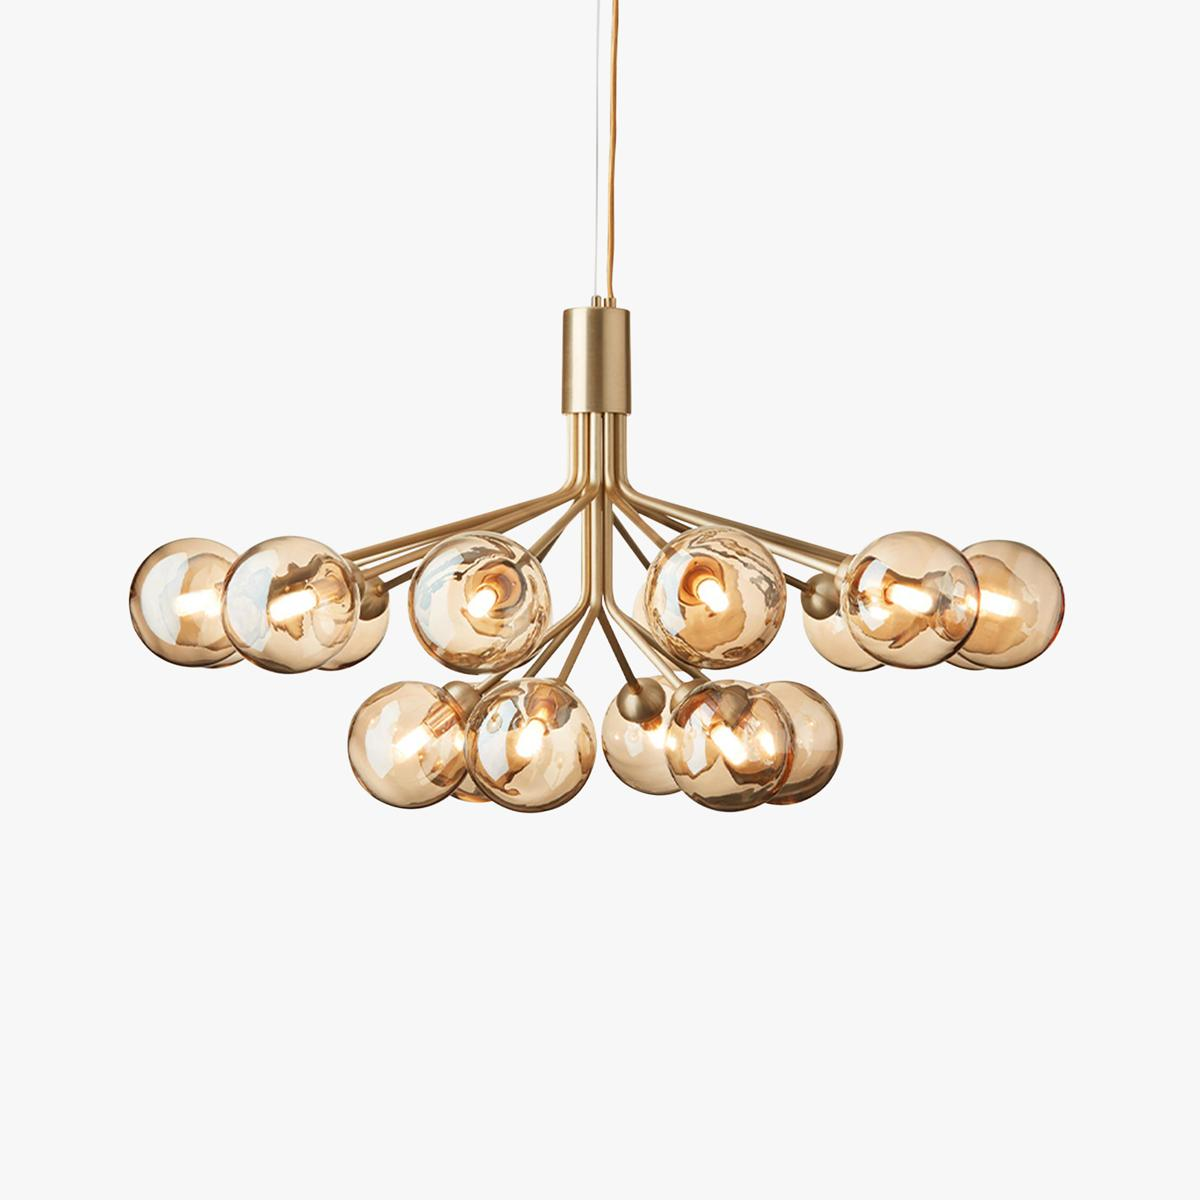 nuura-apiales-18-chandelier-brushed-brass-2-1200